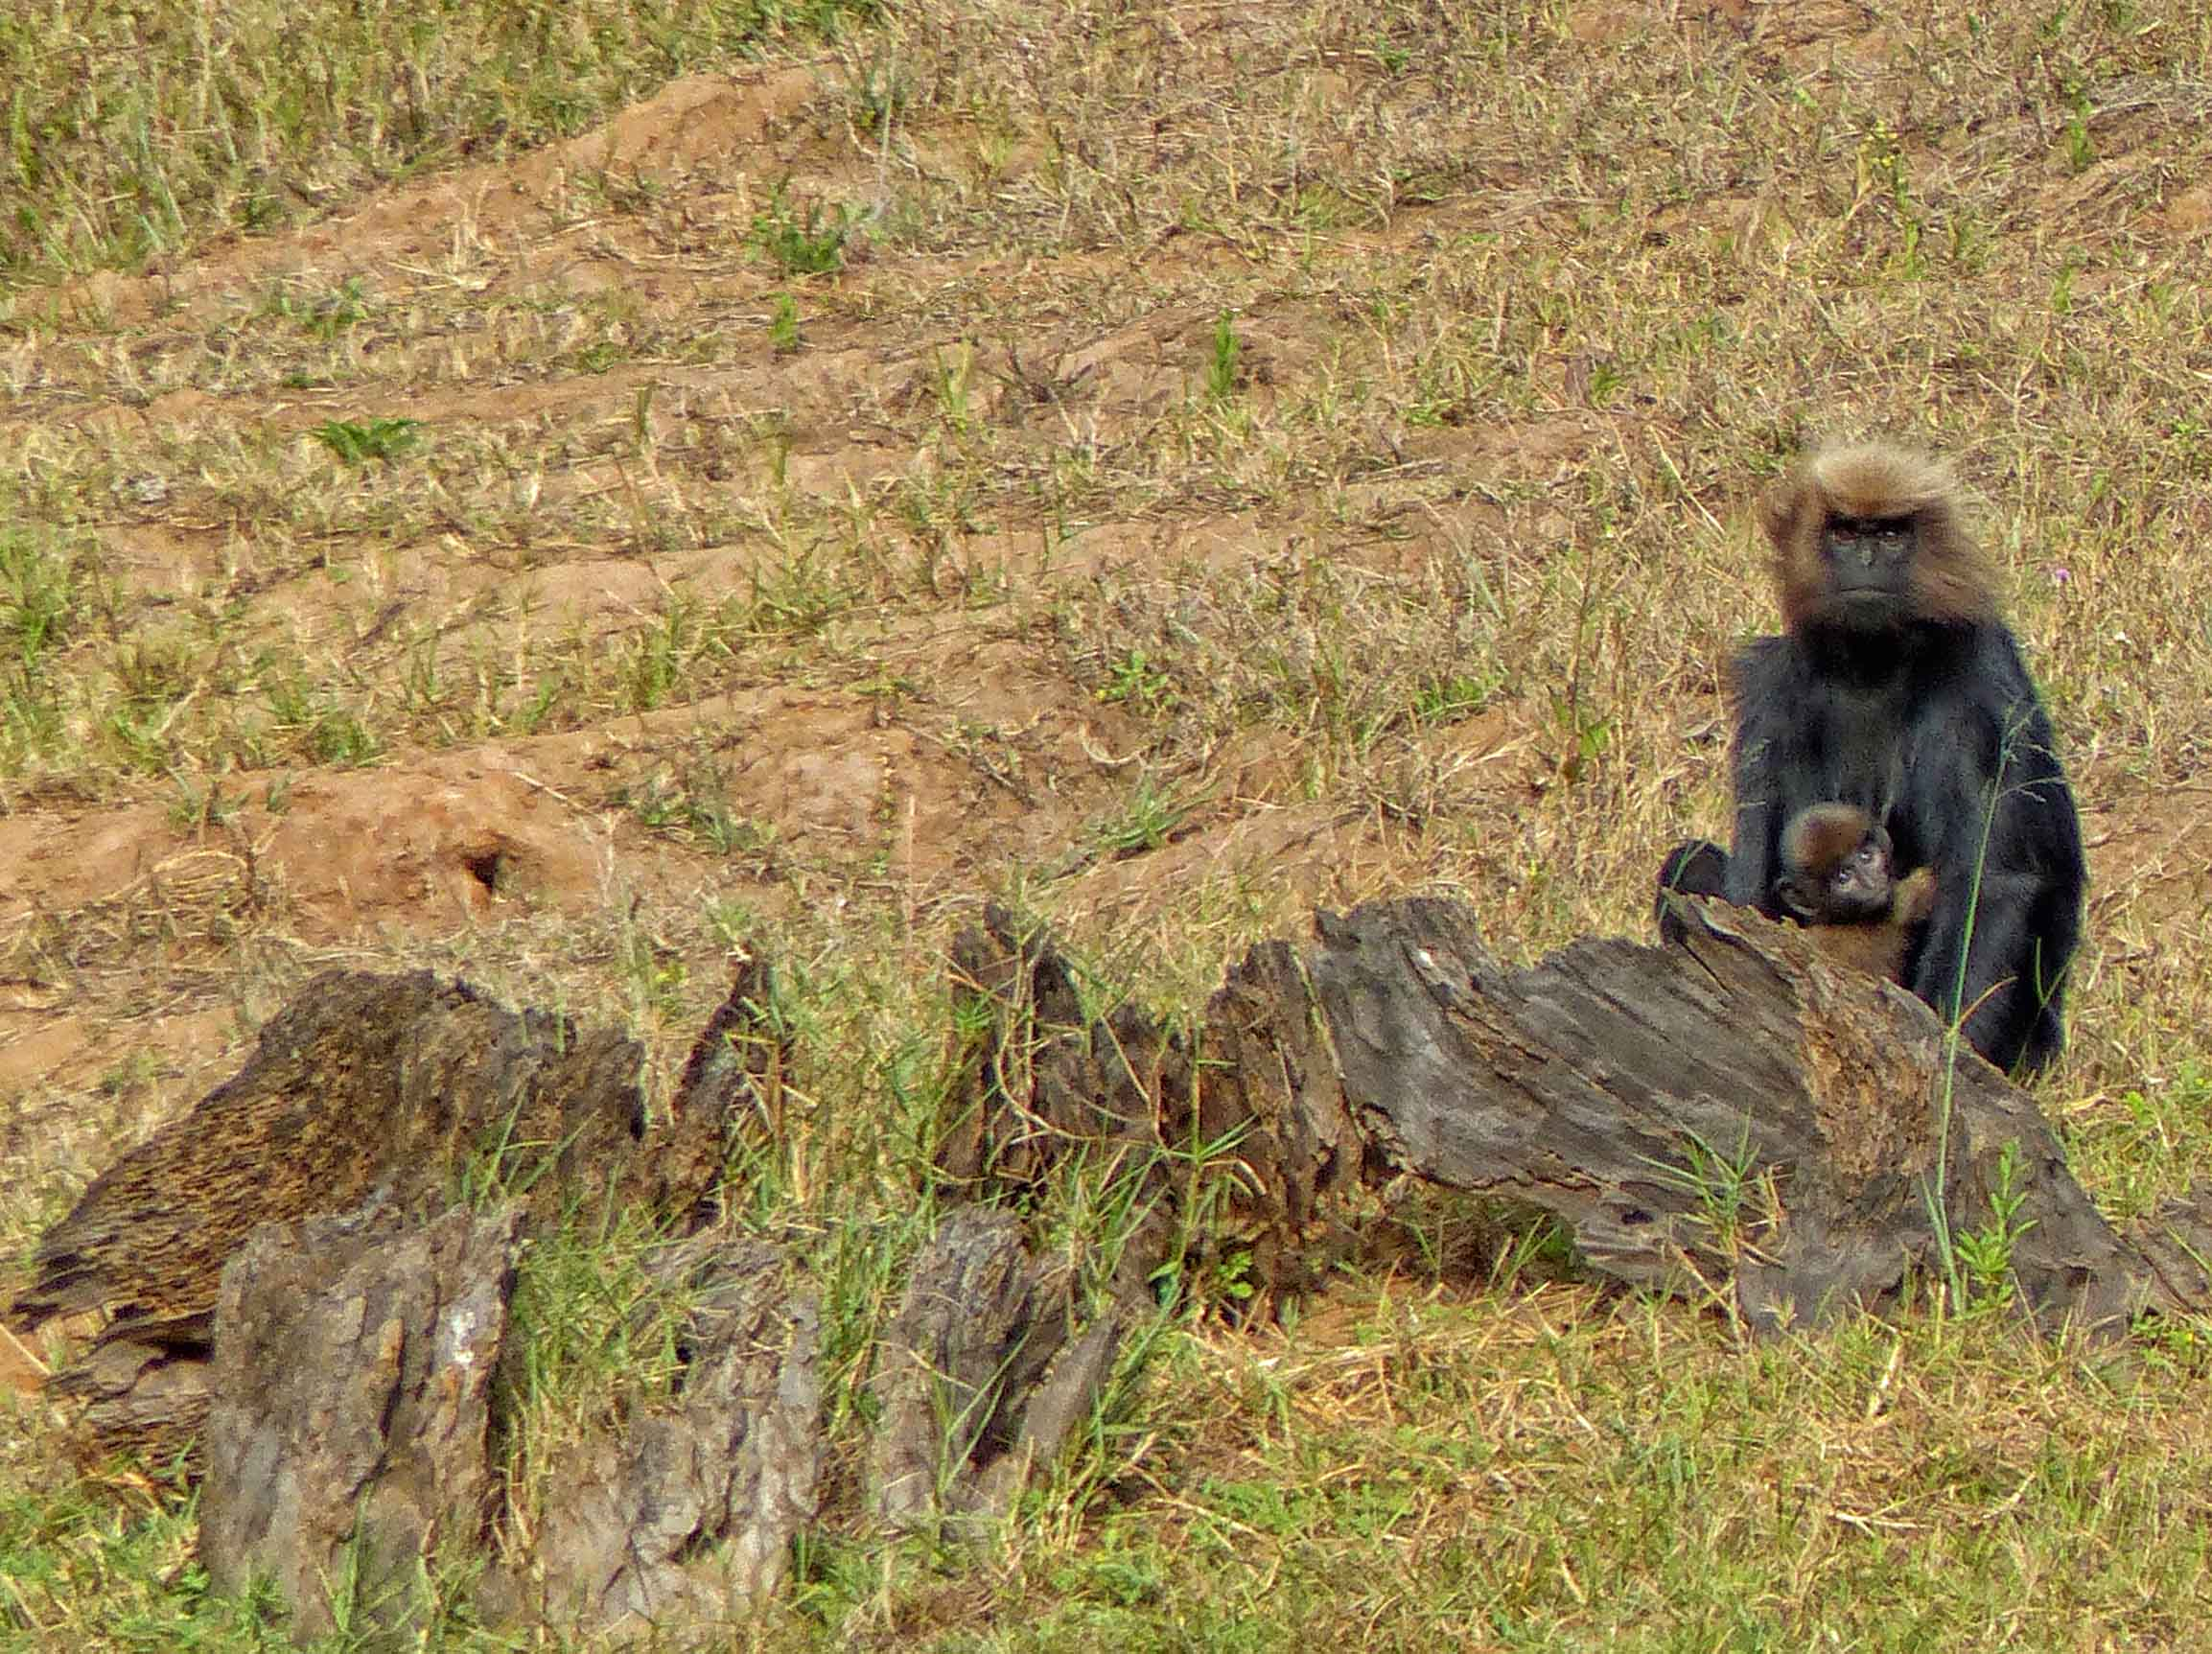 Black monkey with baby by a fallen tree